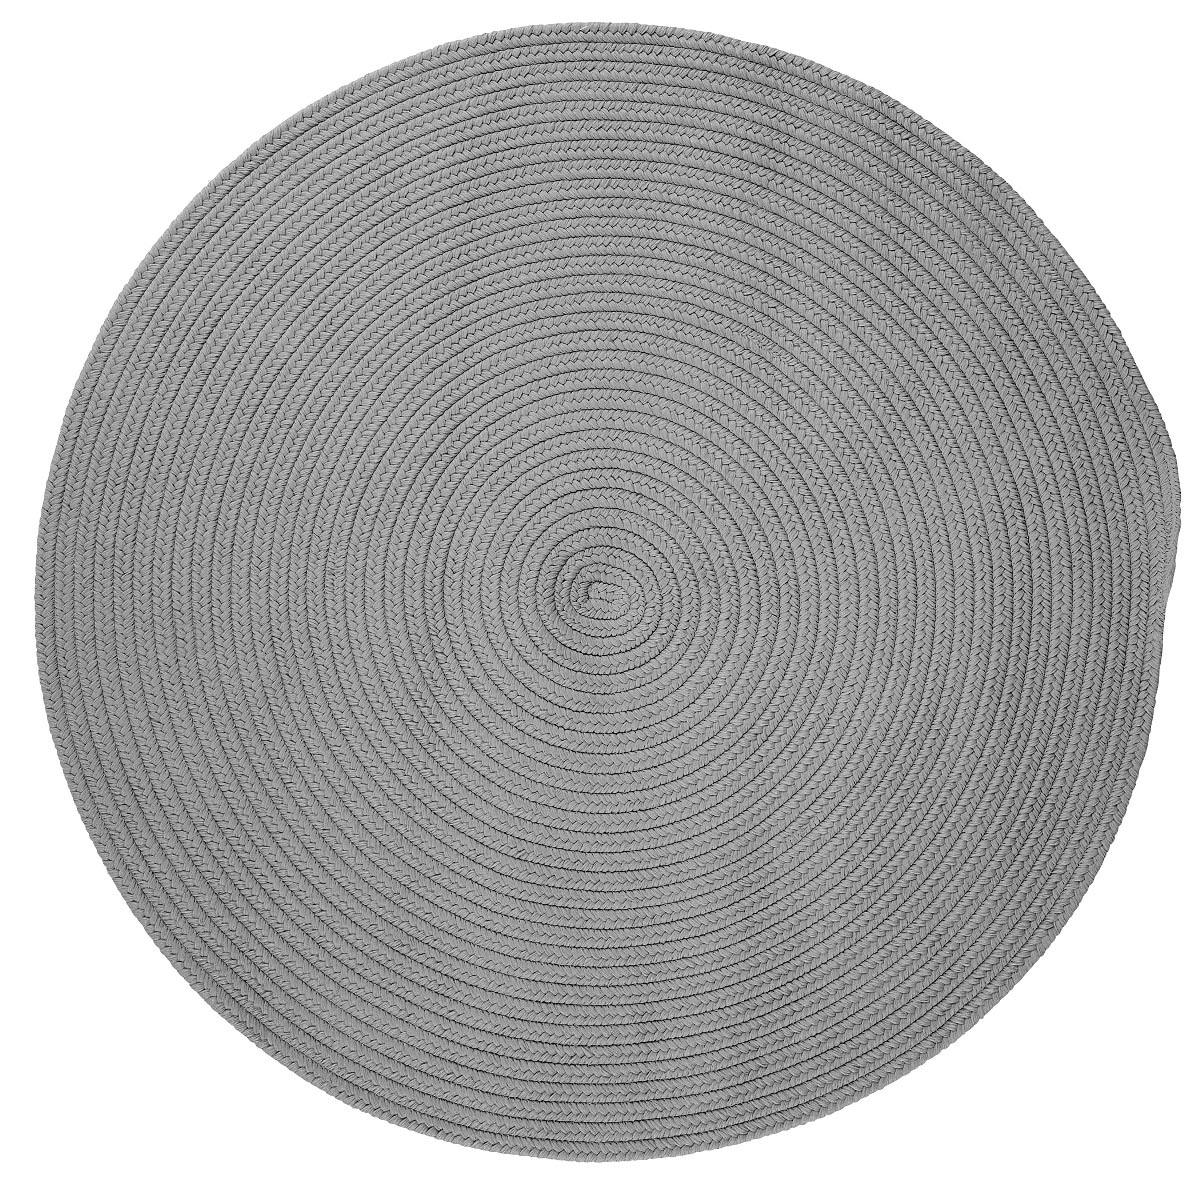 Boca Raton Shadow Outdoor Braided Round Rugs